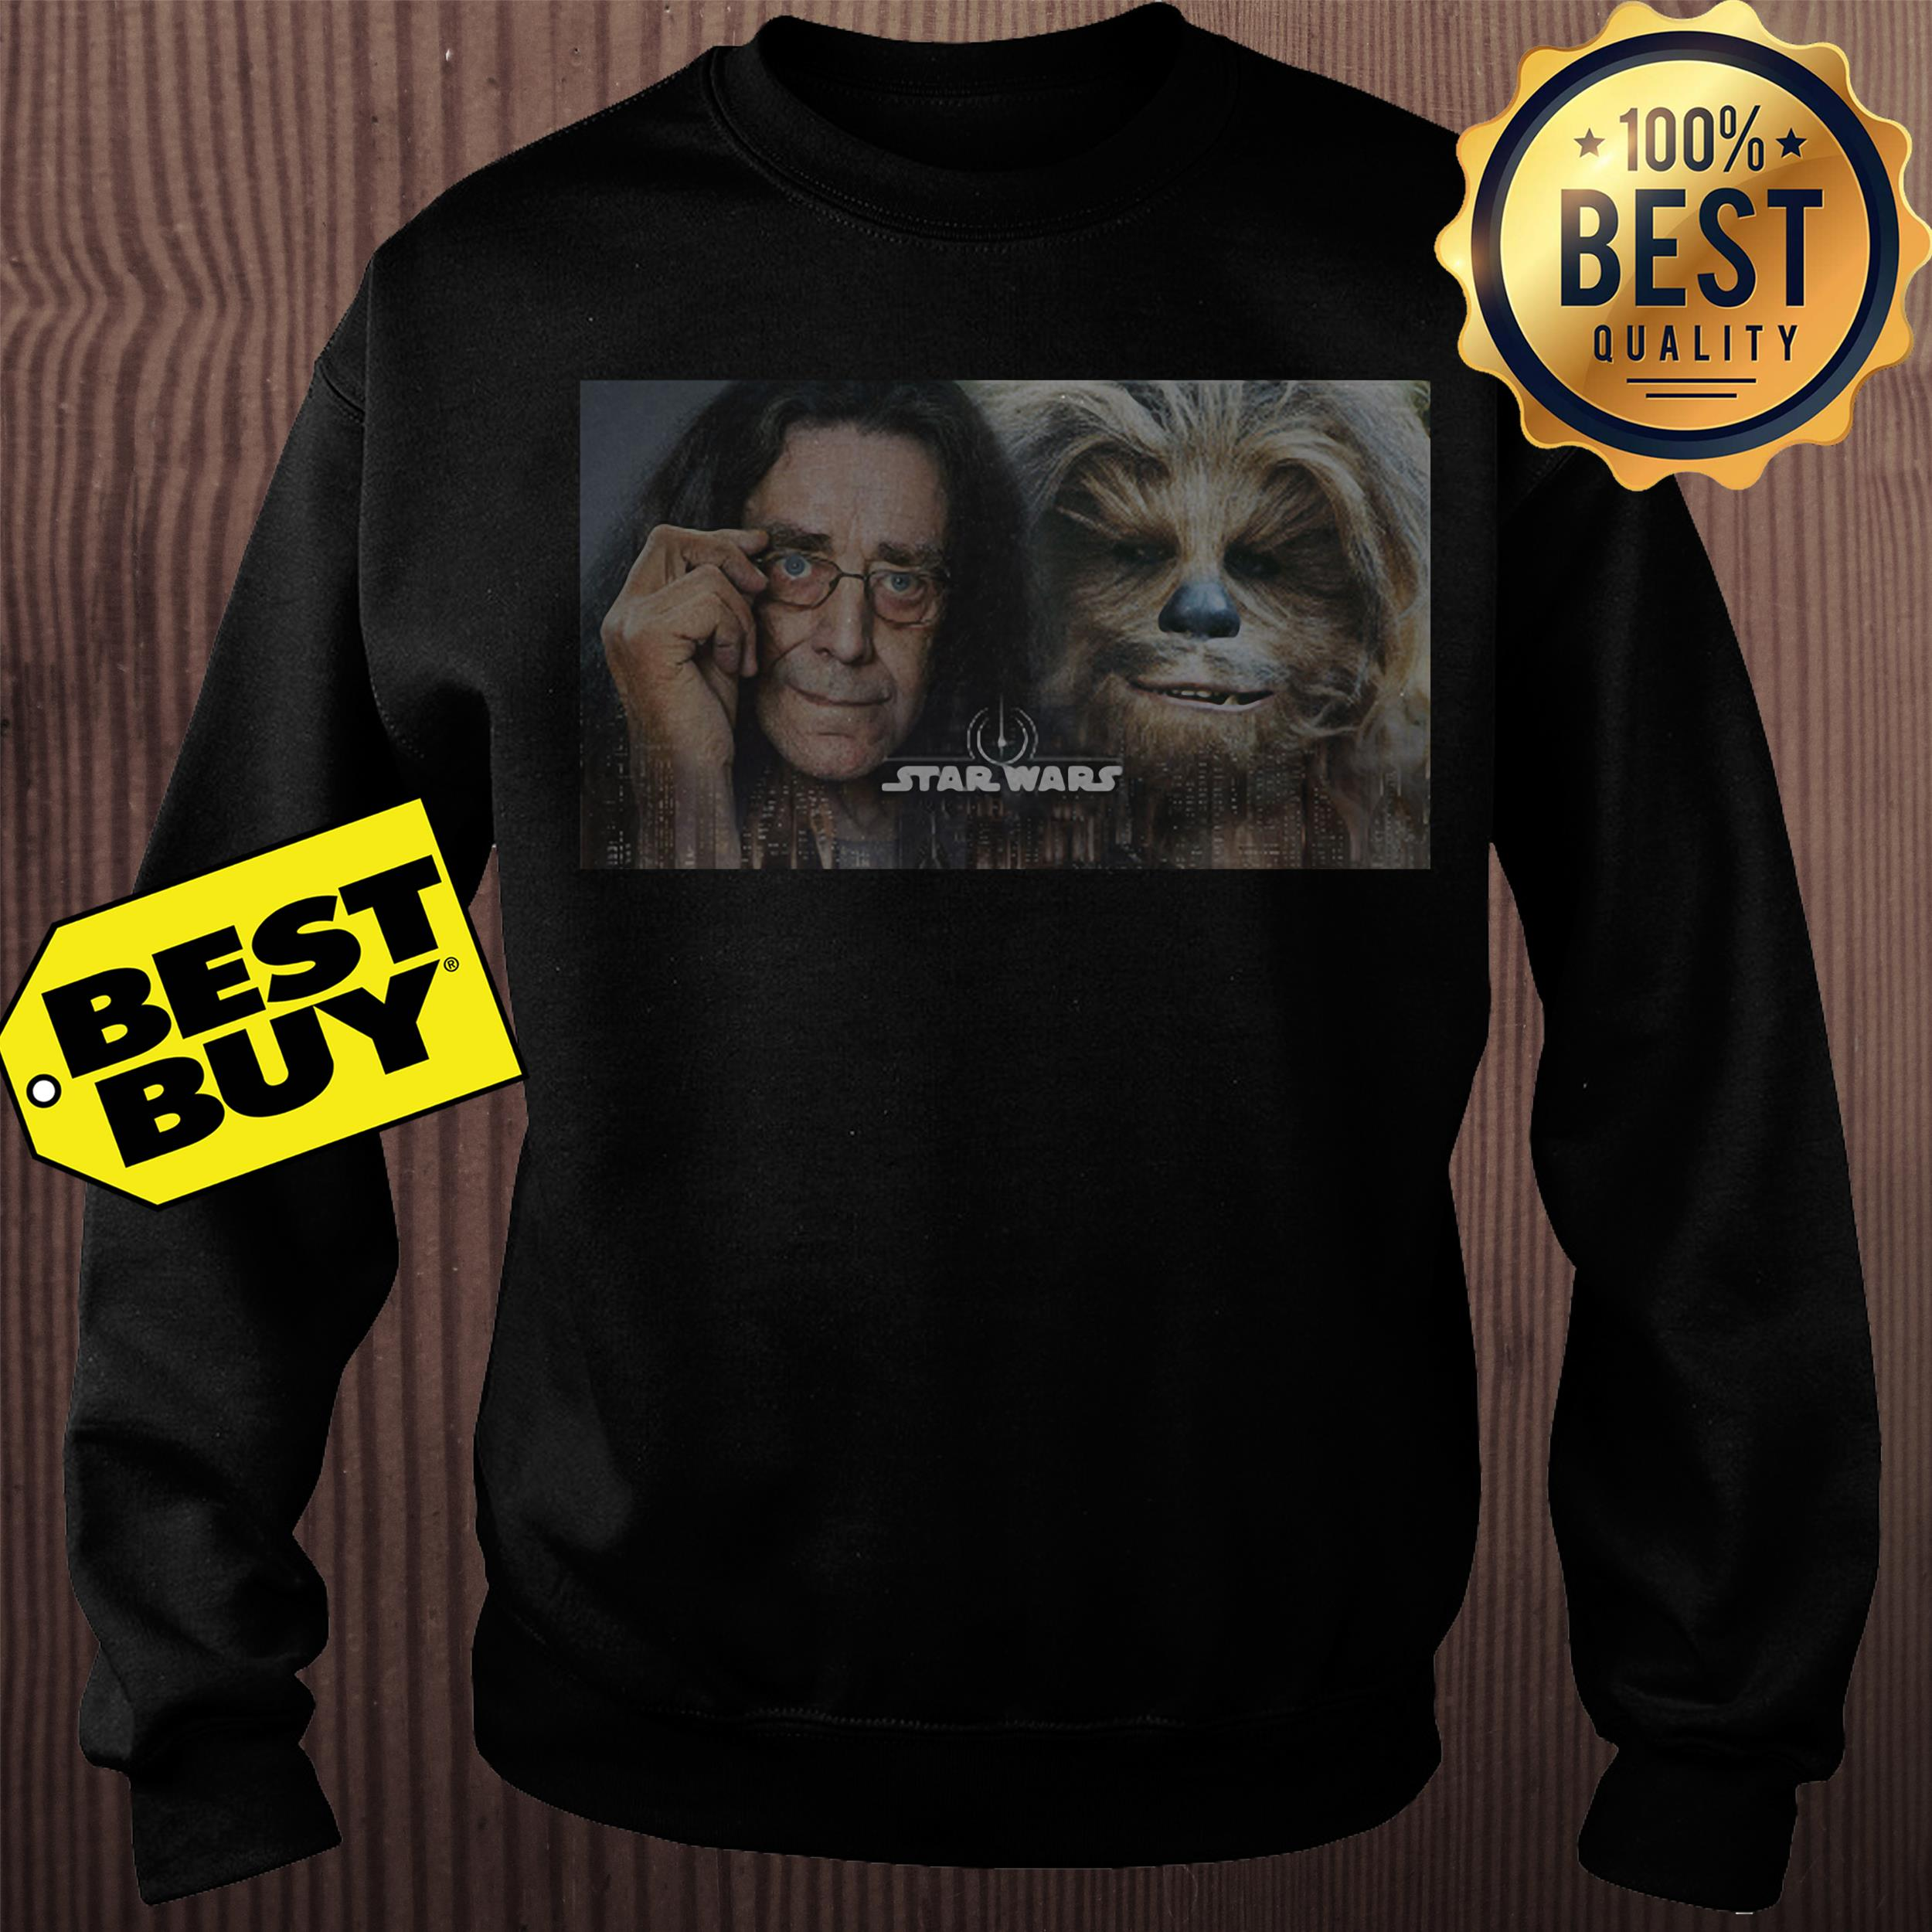 Chewbacca Peter Mayhew Star Wars sweathirt